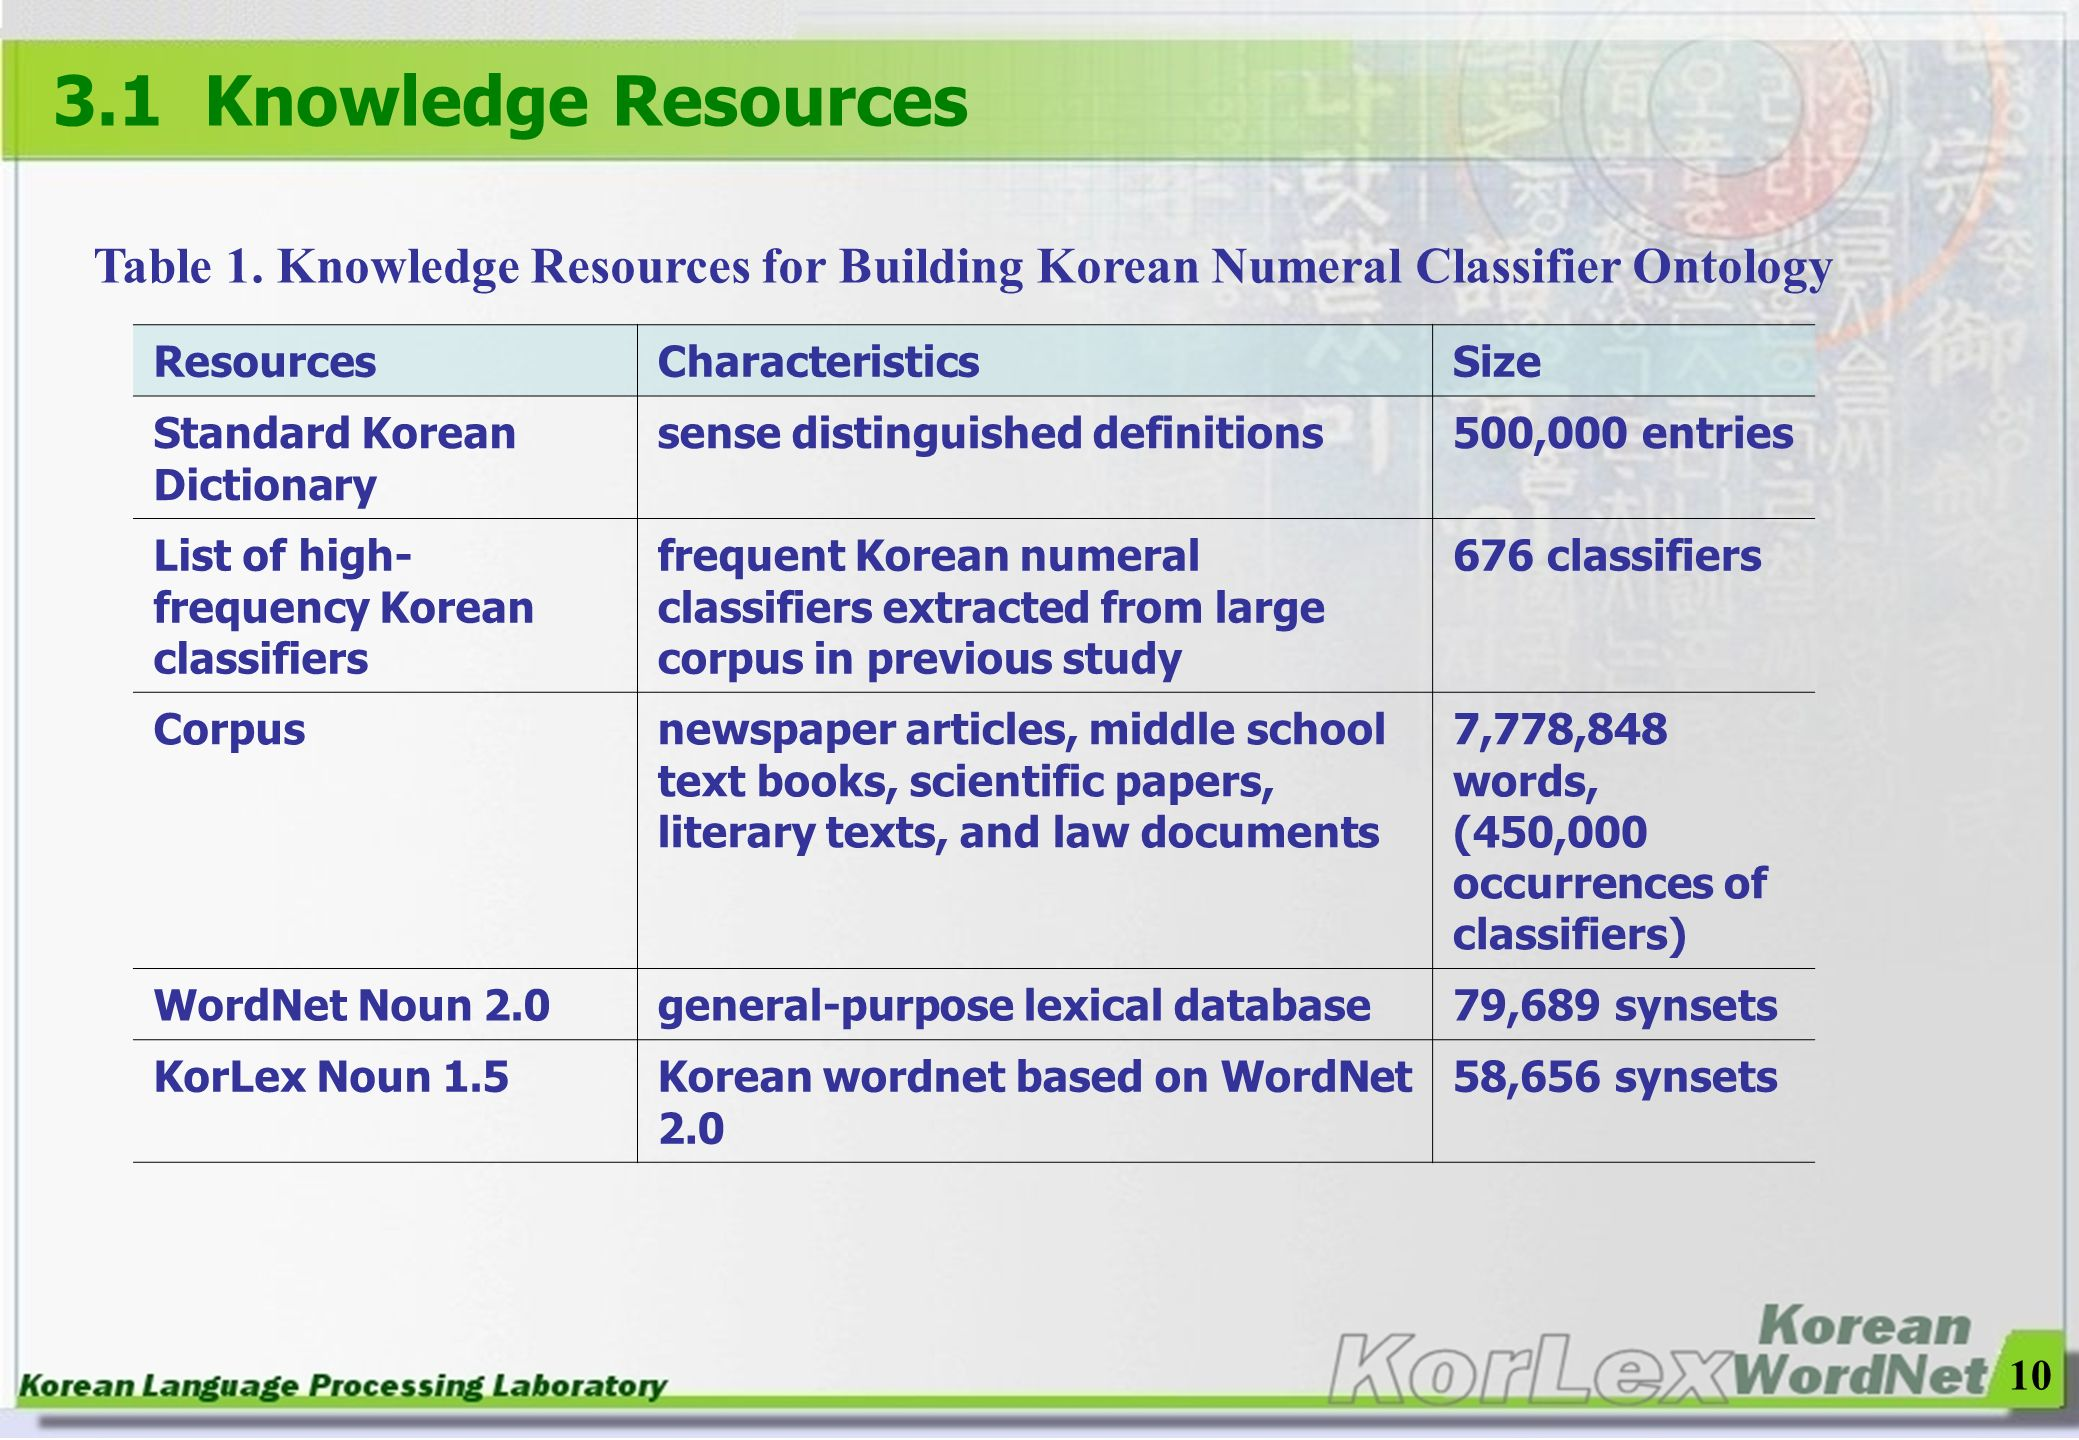 3.1 Knowledge Resources Table 1. Knowledge Resources for Building Korean Numeral Classifier Ontology.